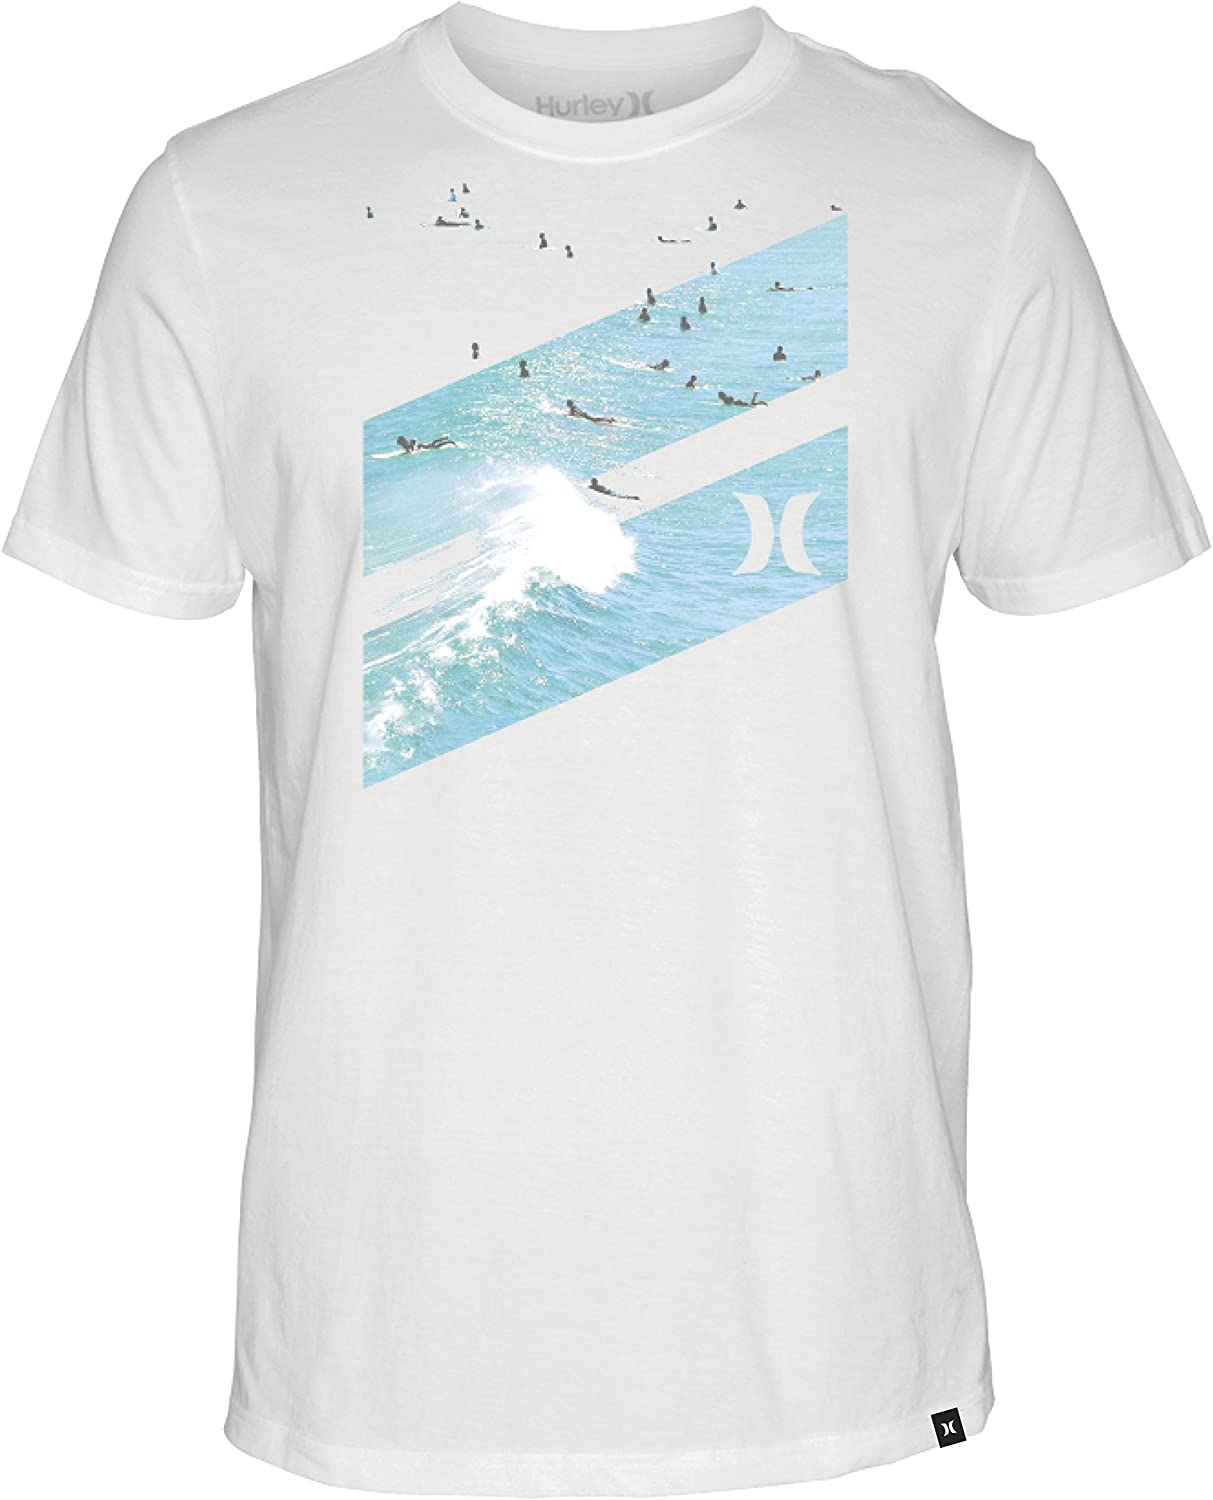 Boy/'s Hurley Surfer Skater Graphic Logo T-Shirt Size L or XL New